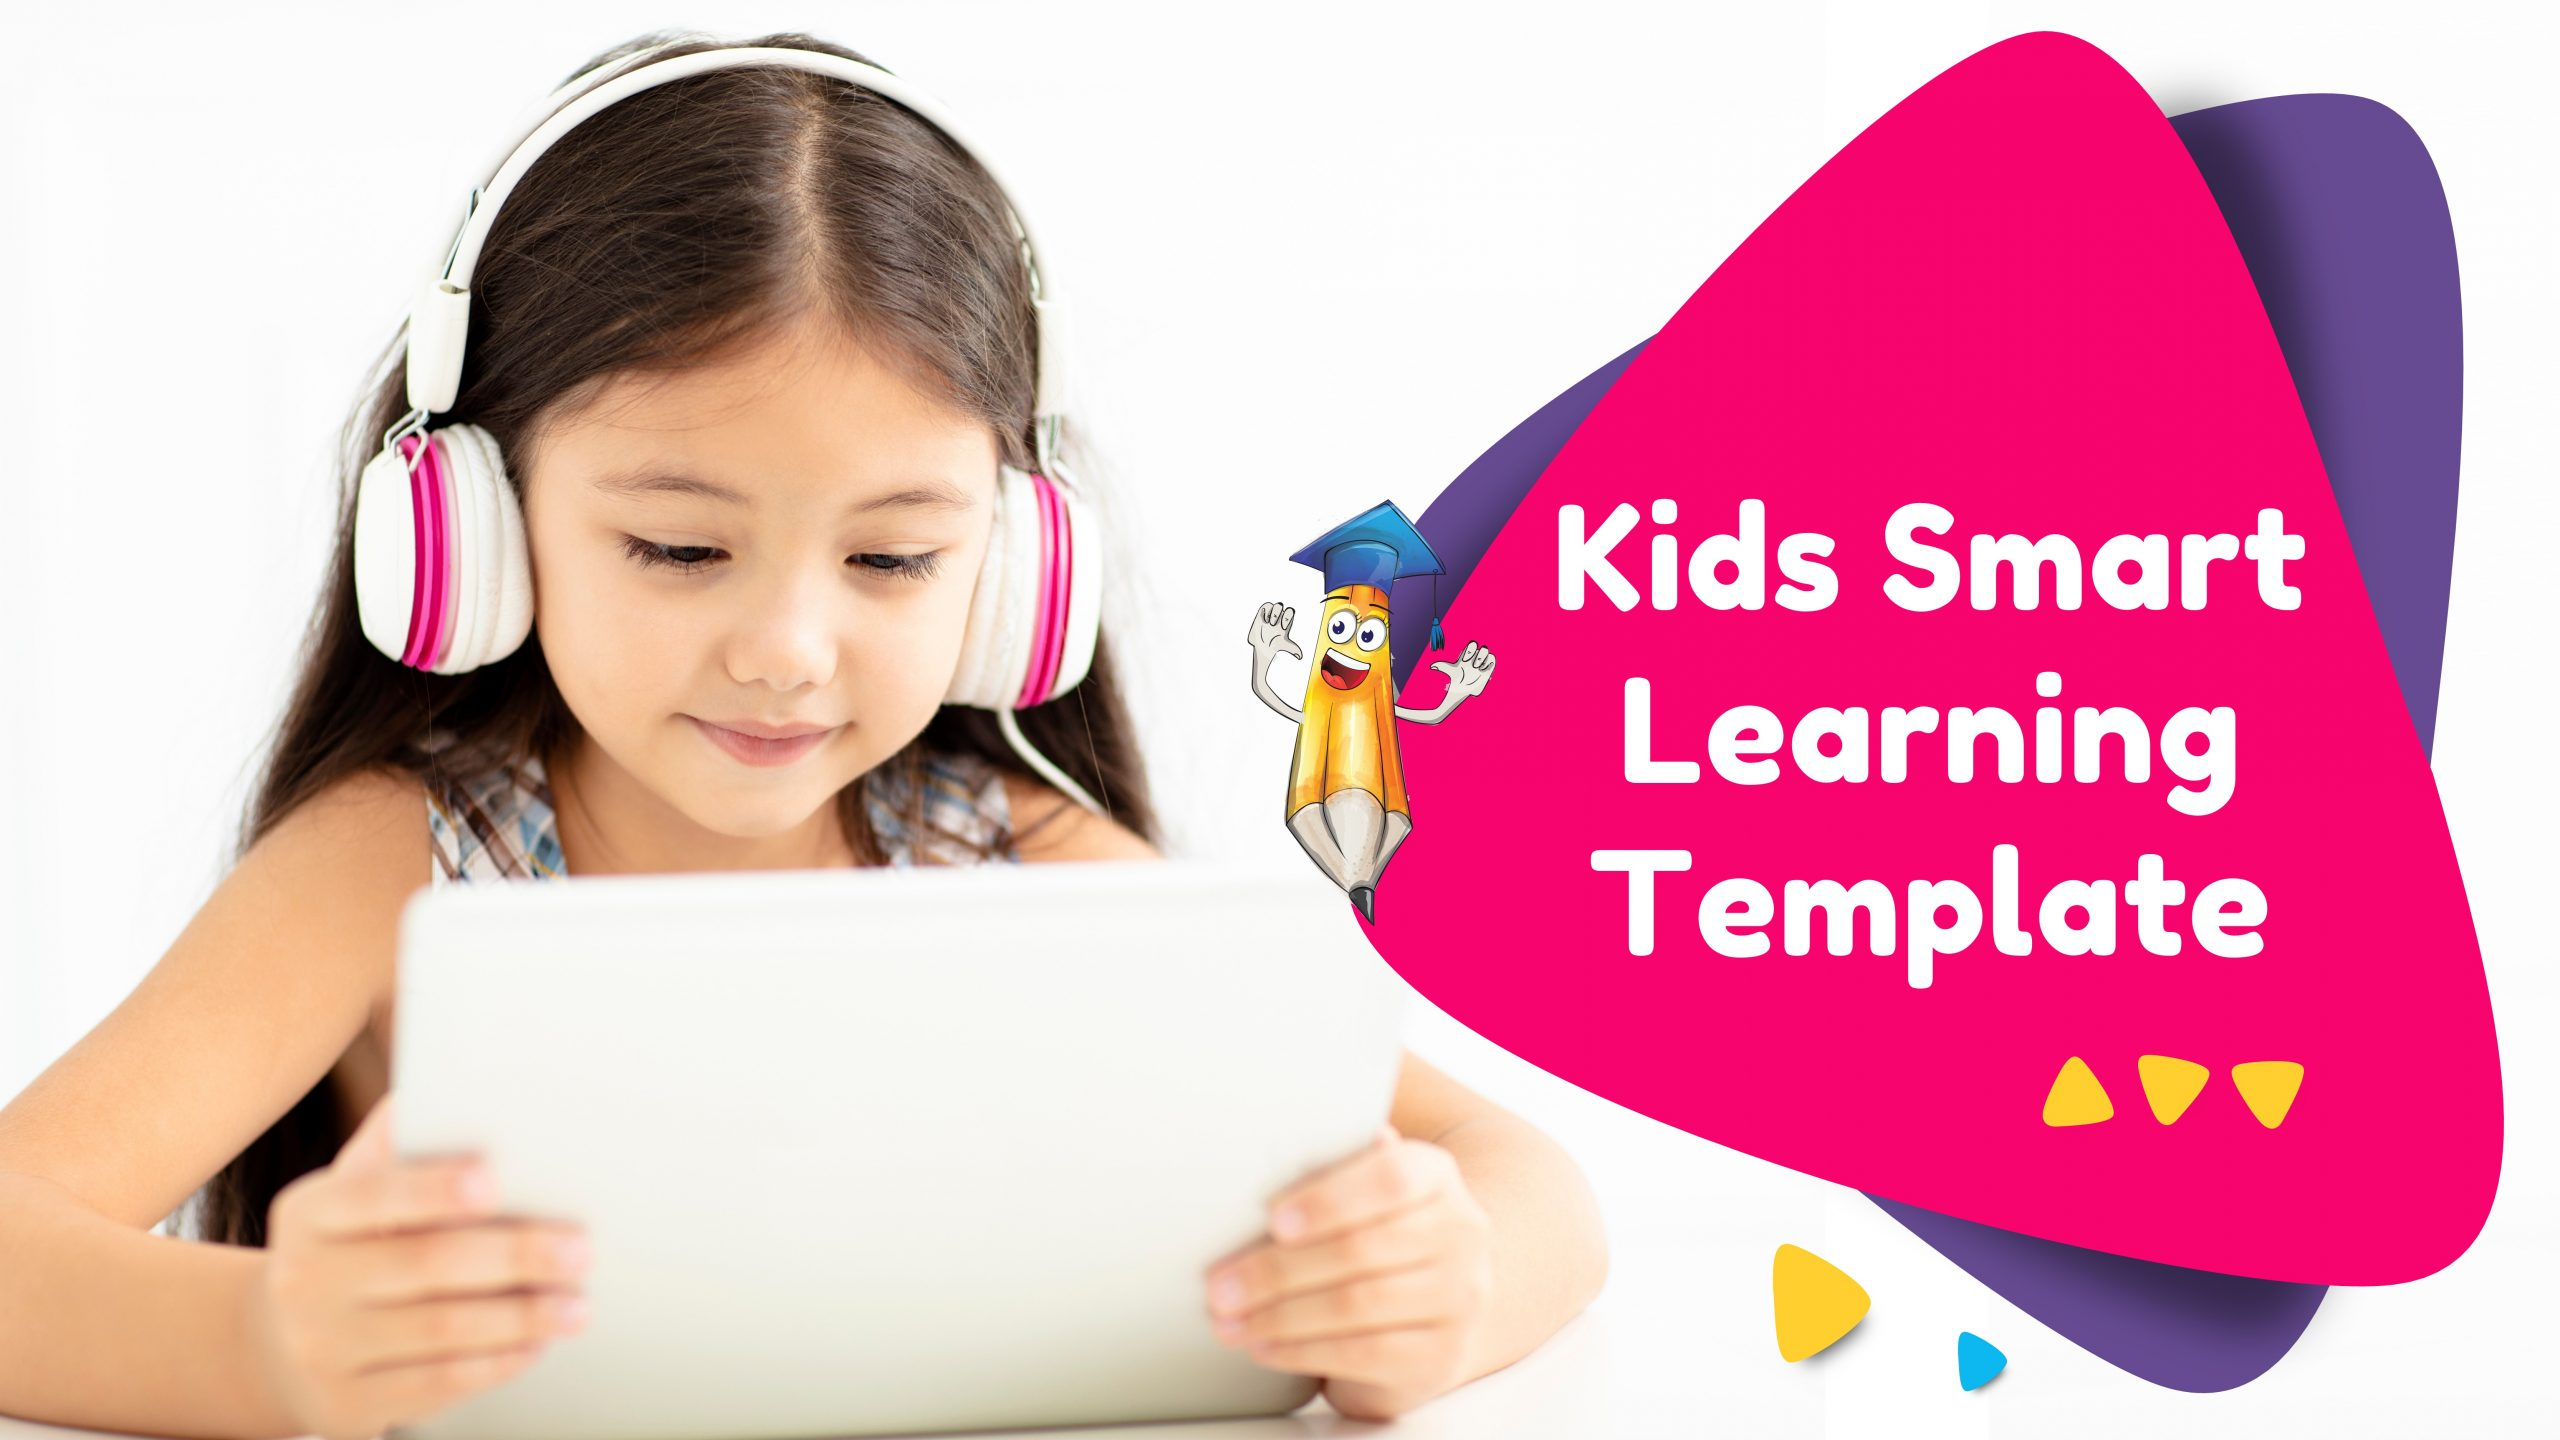 Free presentation template of Kids Smart Learning